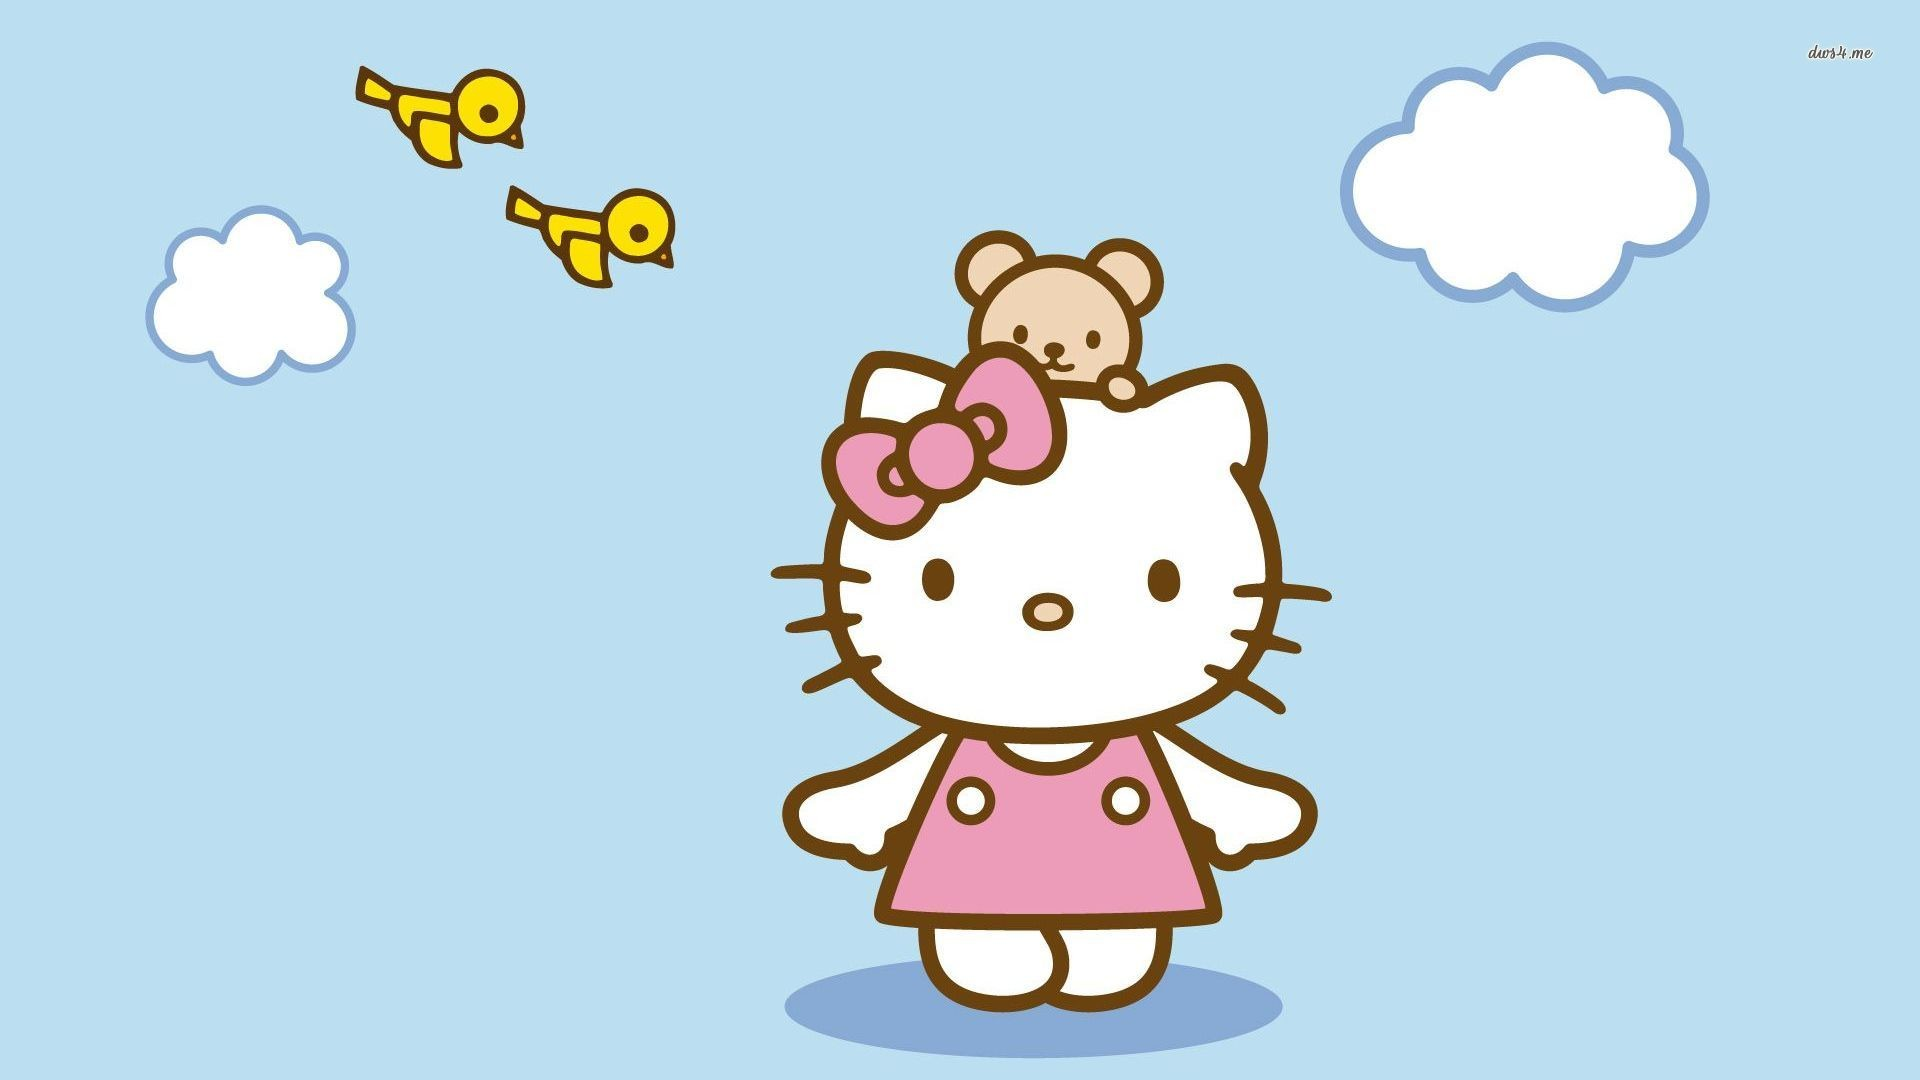 1920x1080 66 Hello Kitty HD Wallpapers | Backgrounds - Wallpaper Abyss